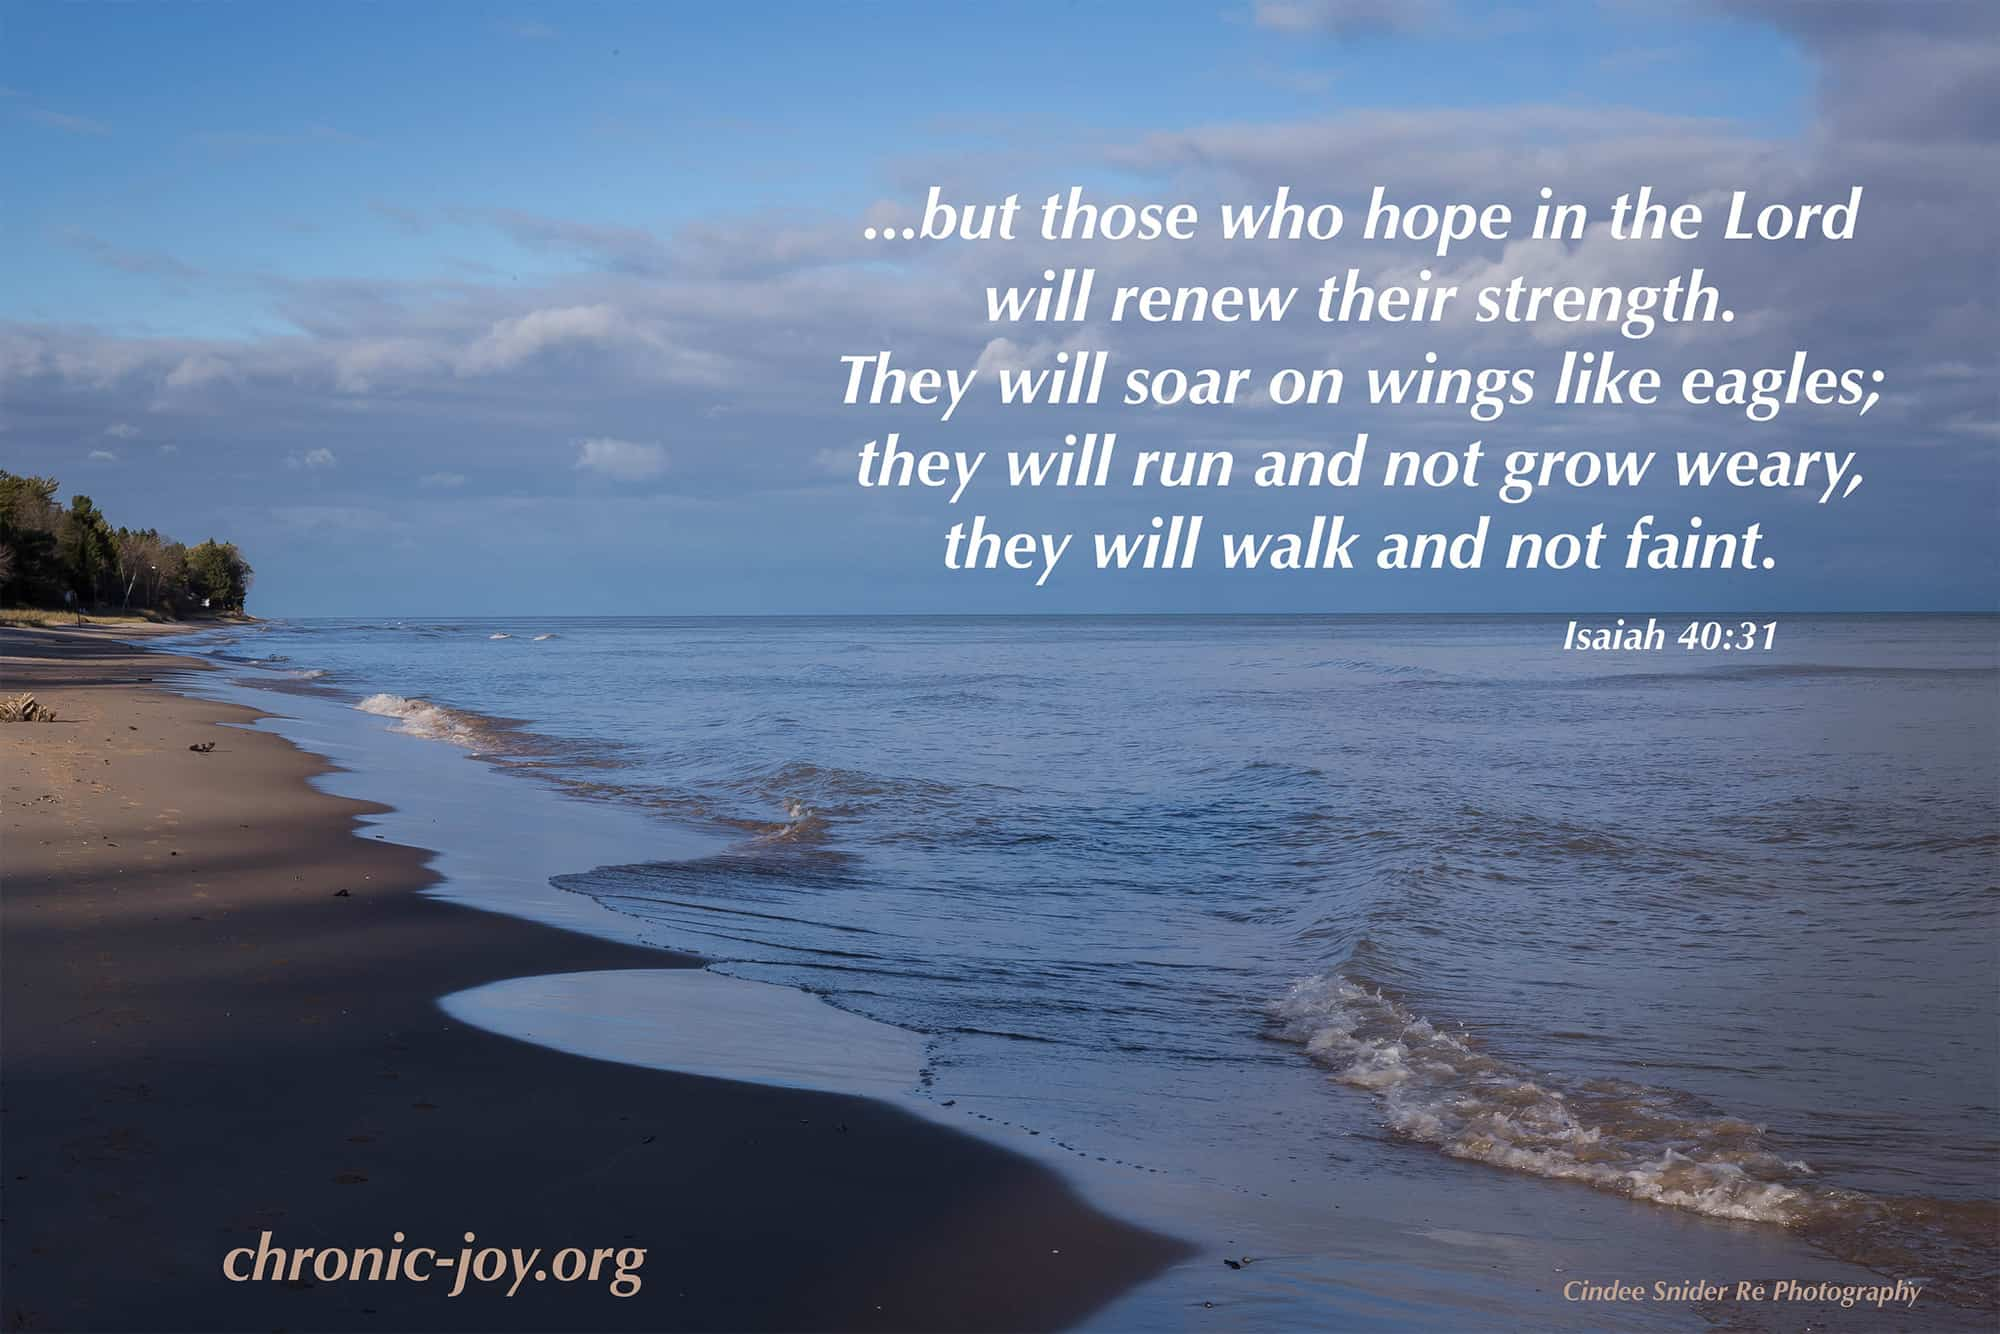 ...but those who hope in the Lord...